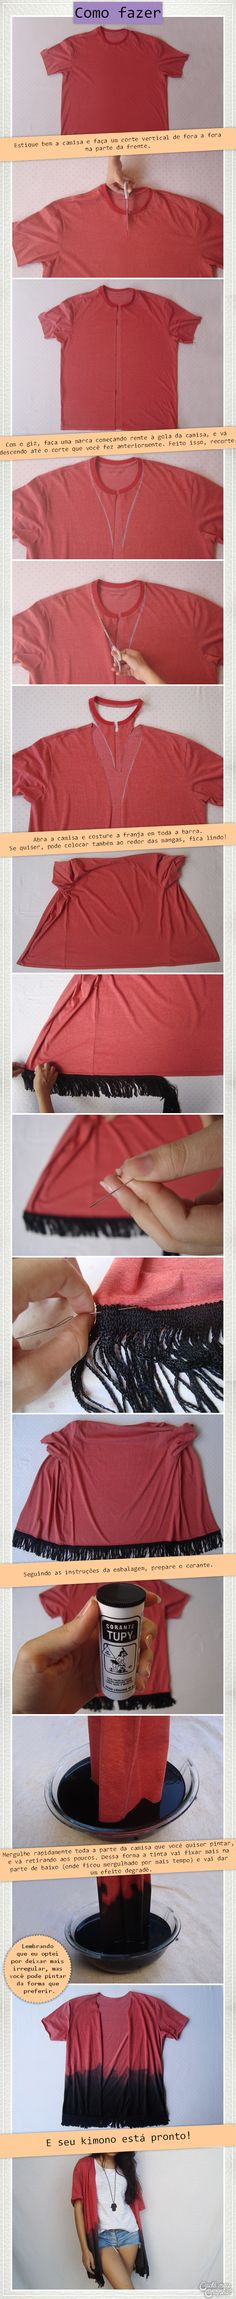 Original idea para customizar tu ropa. #reciclar #DIY